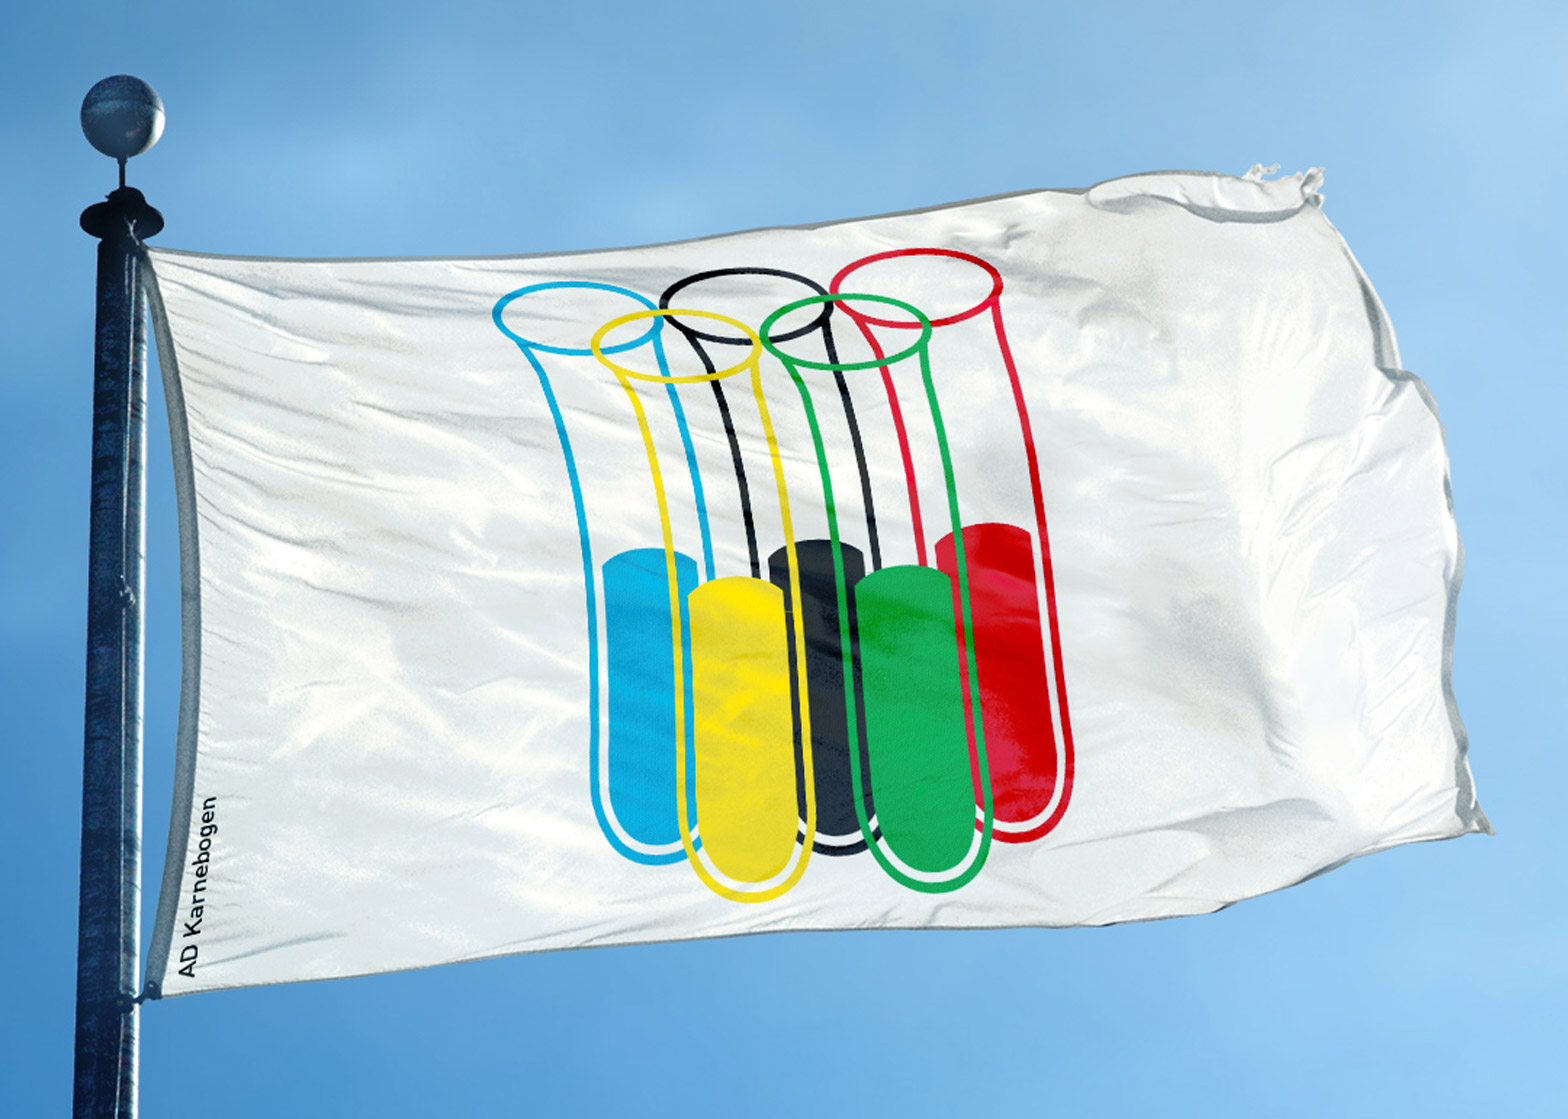 olympic-flag-doping-redesign_dezeen_1568_0